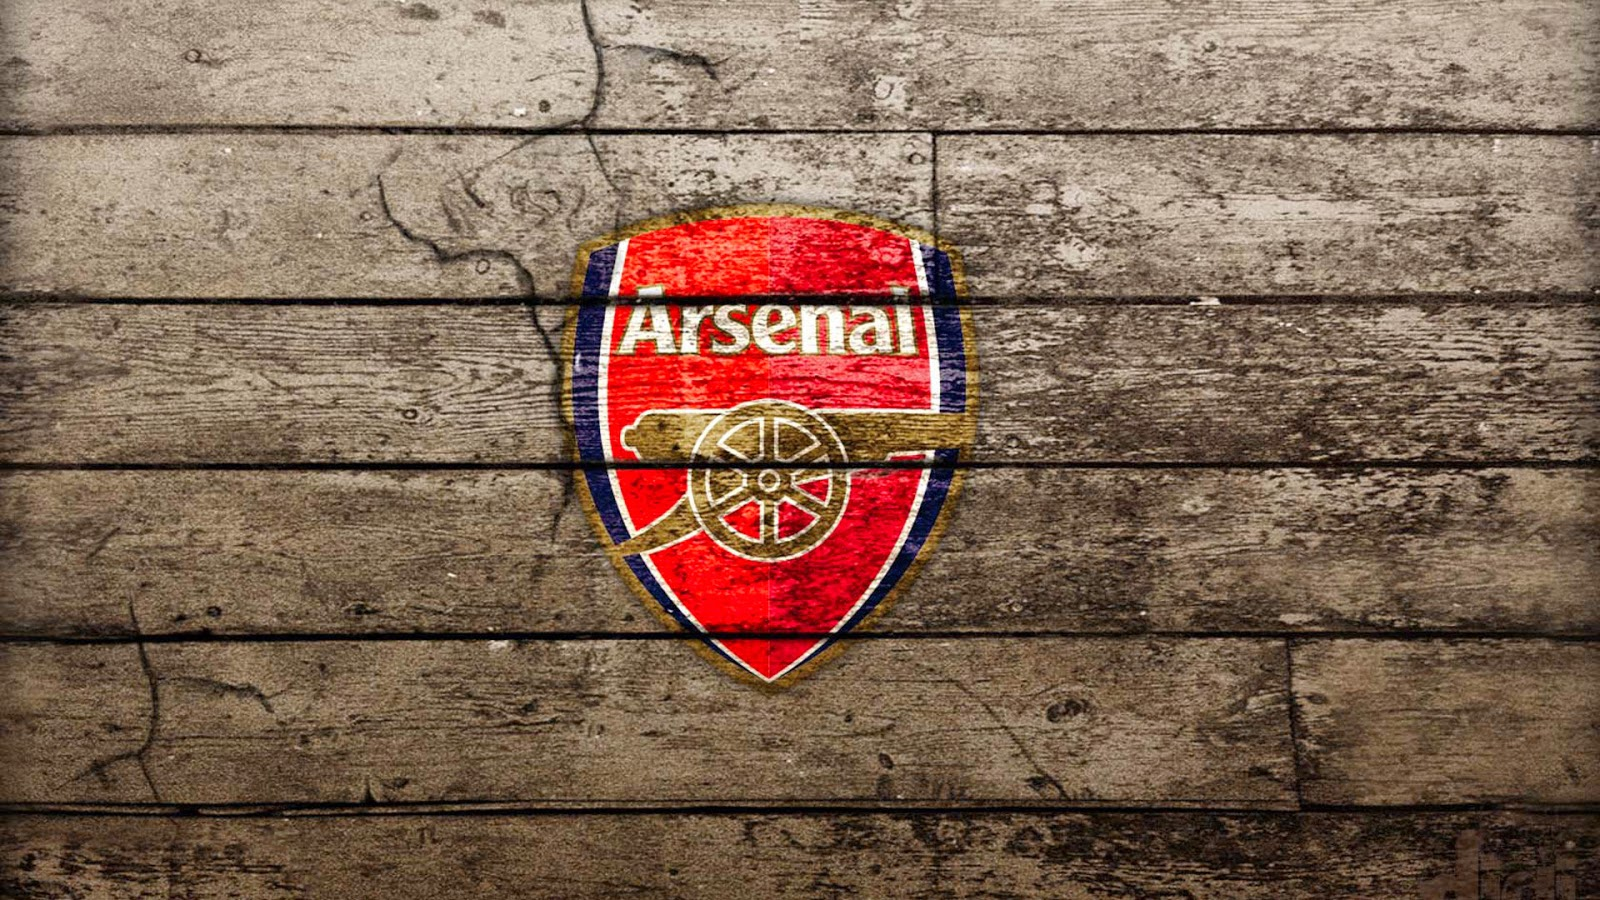 Arsenal Football Club Wallpaper - Football Wallpaper HD